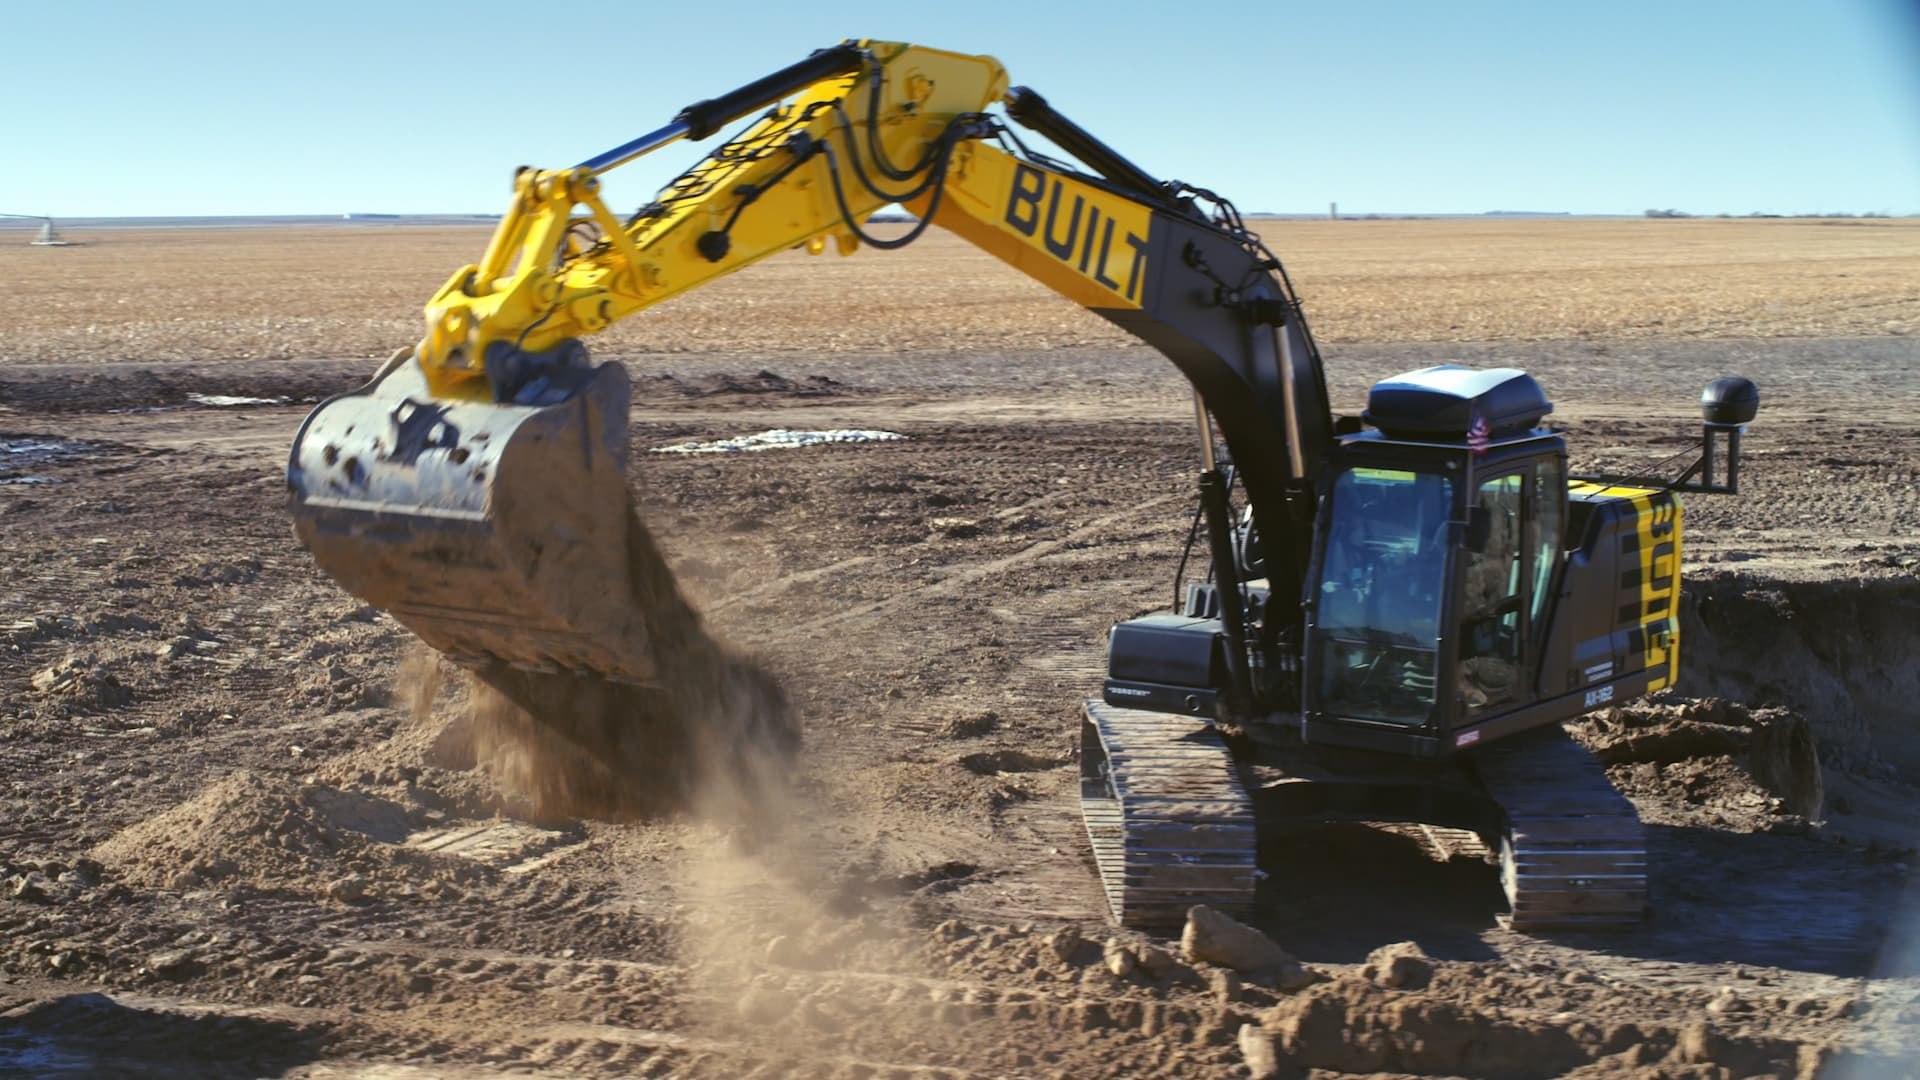 Built Robotics puts autonomous machines to work on construction sites.